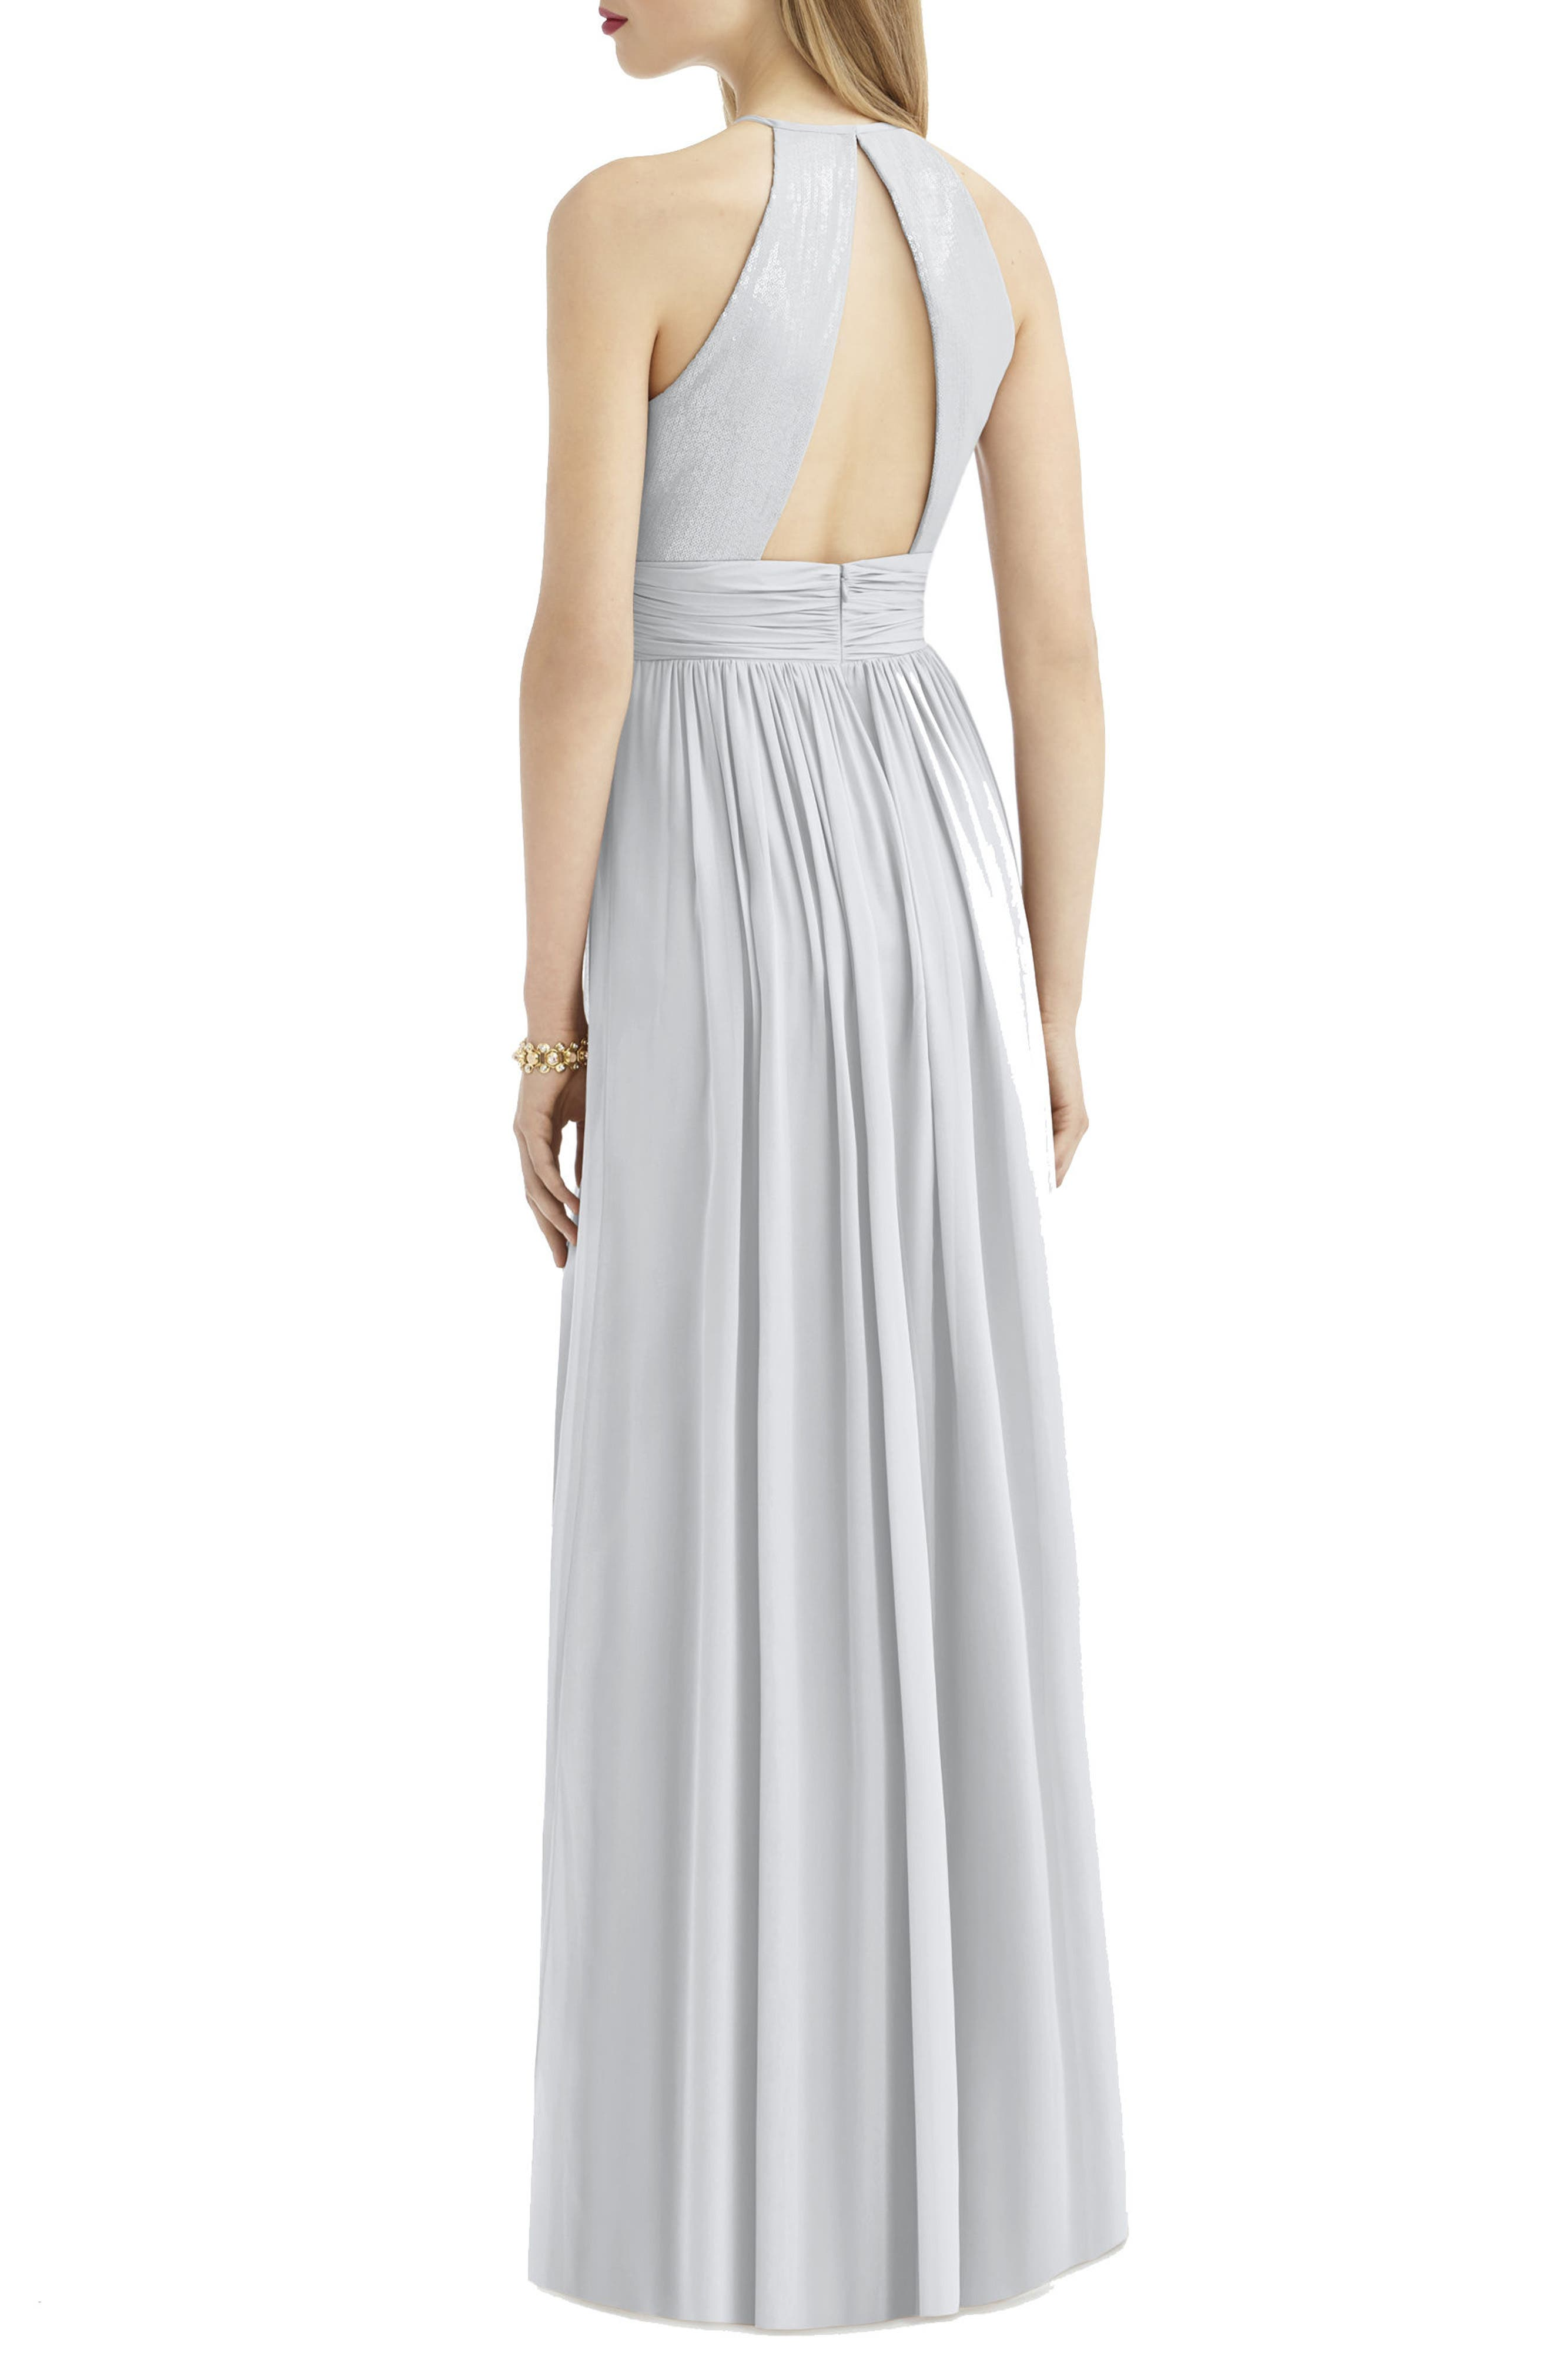 AFTER SIX, Sequin Open Back Chiffon Gown, Alternate thumbnail 2, color, FROST